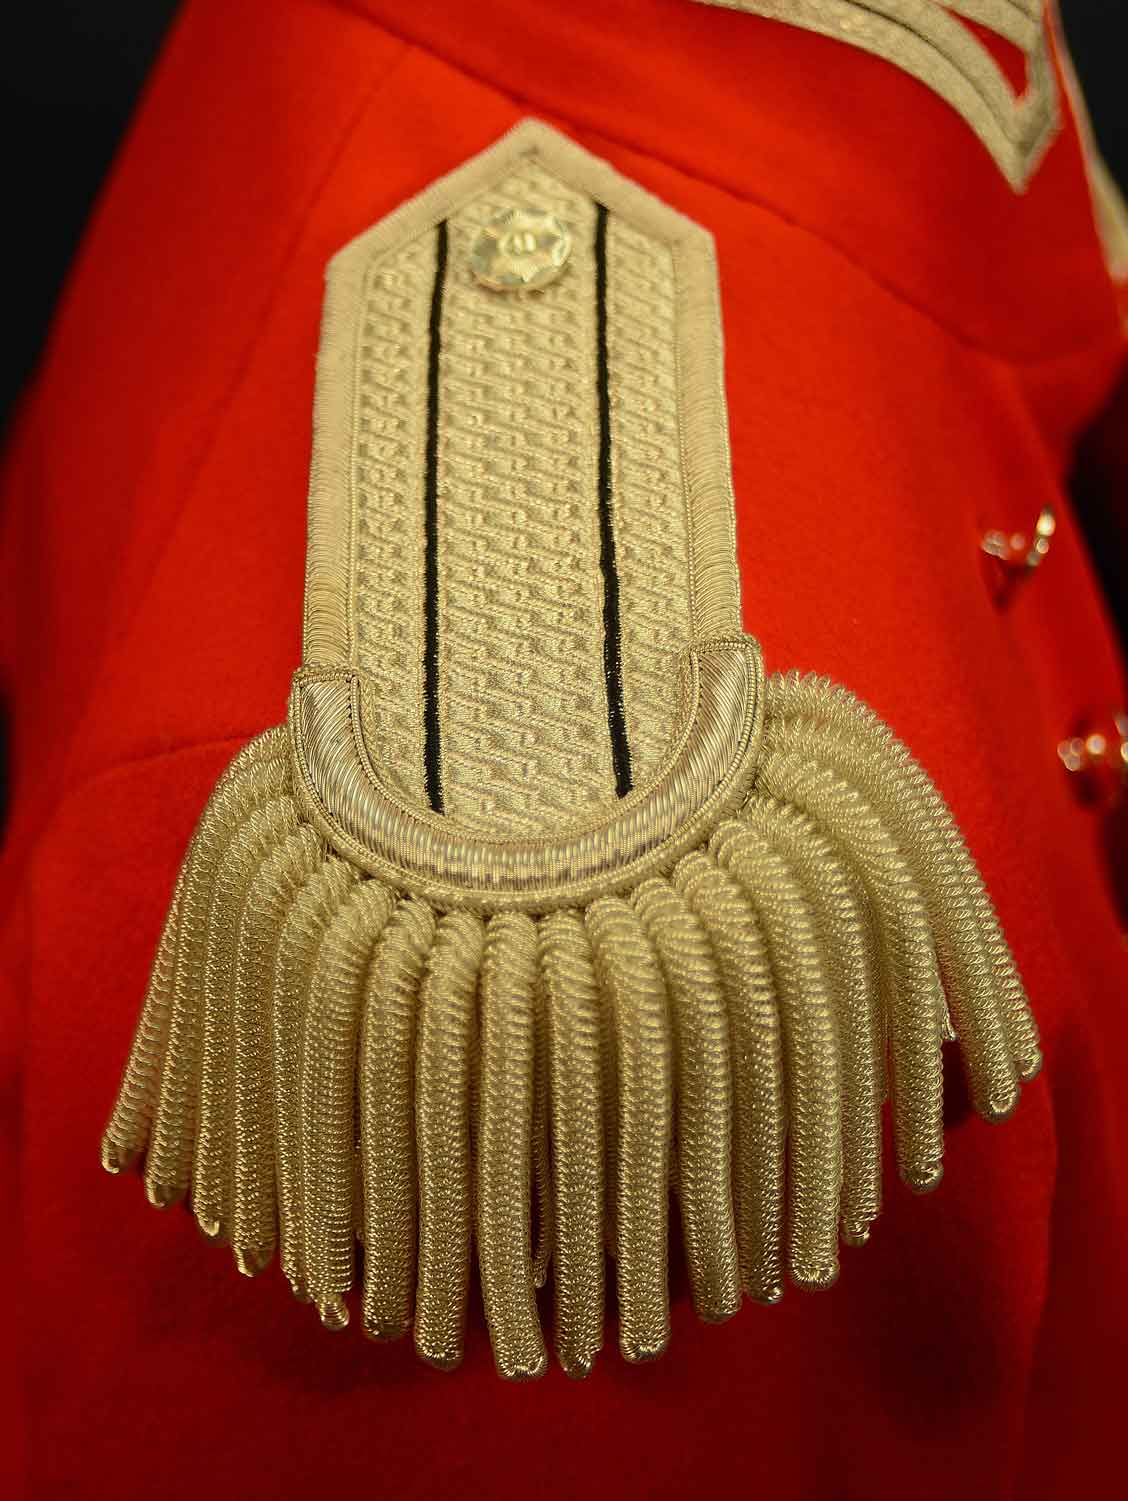 British, 1812, 41st Regt of Foot Epaulette